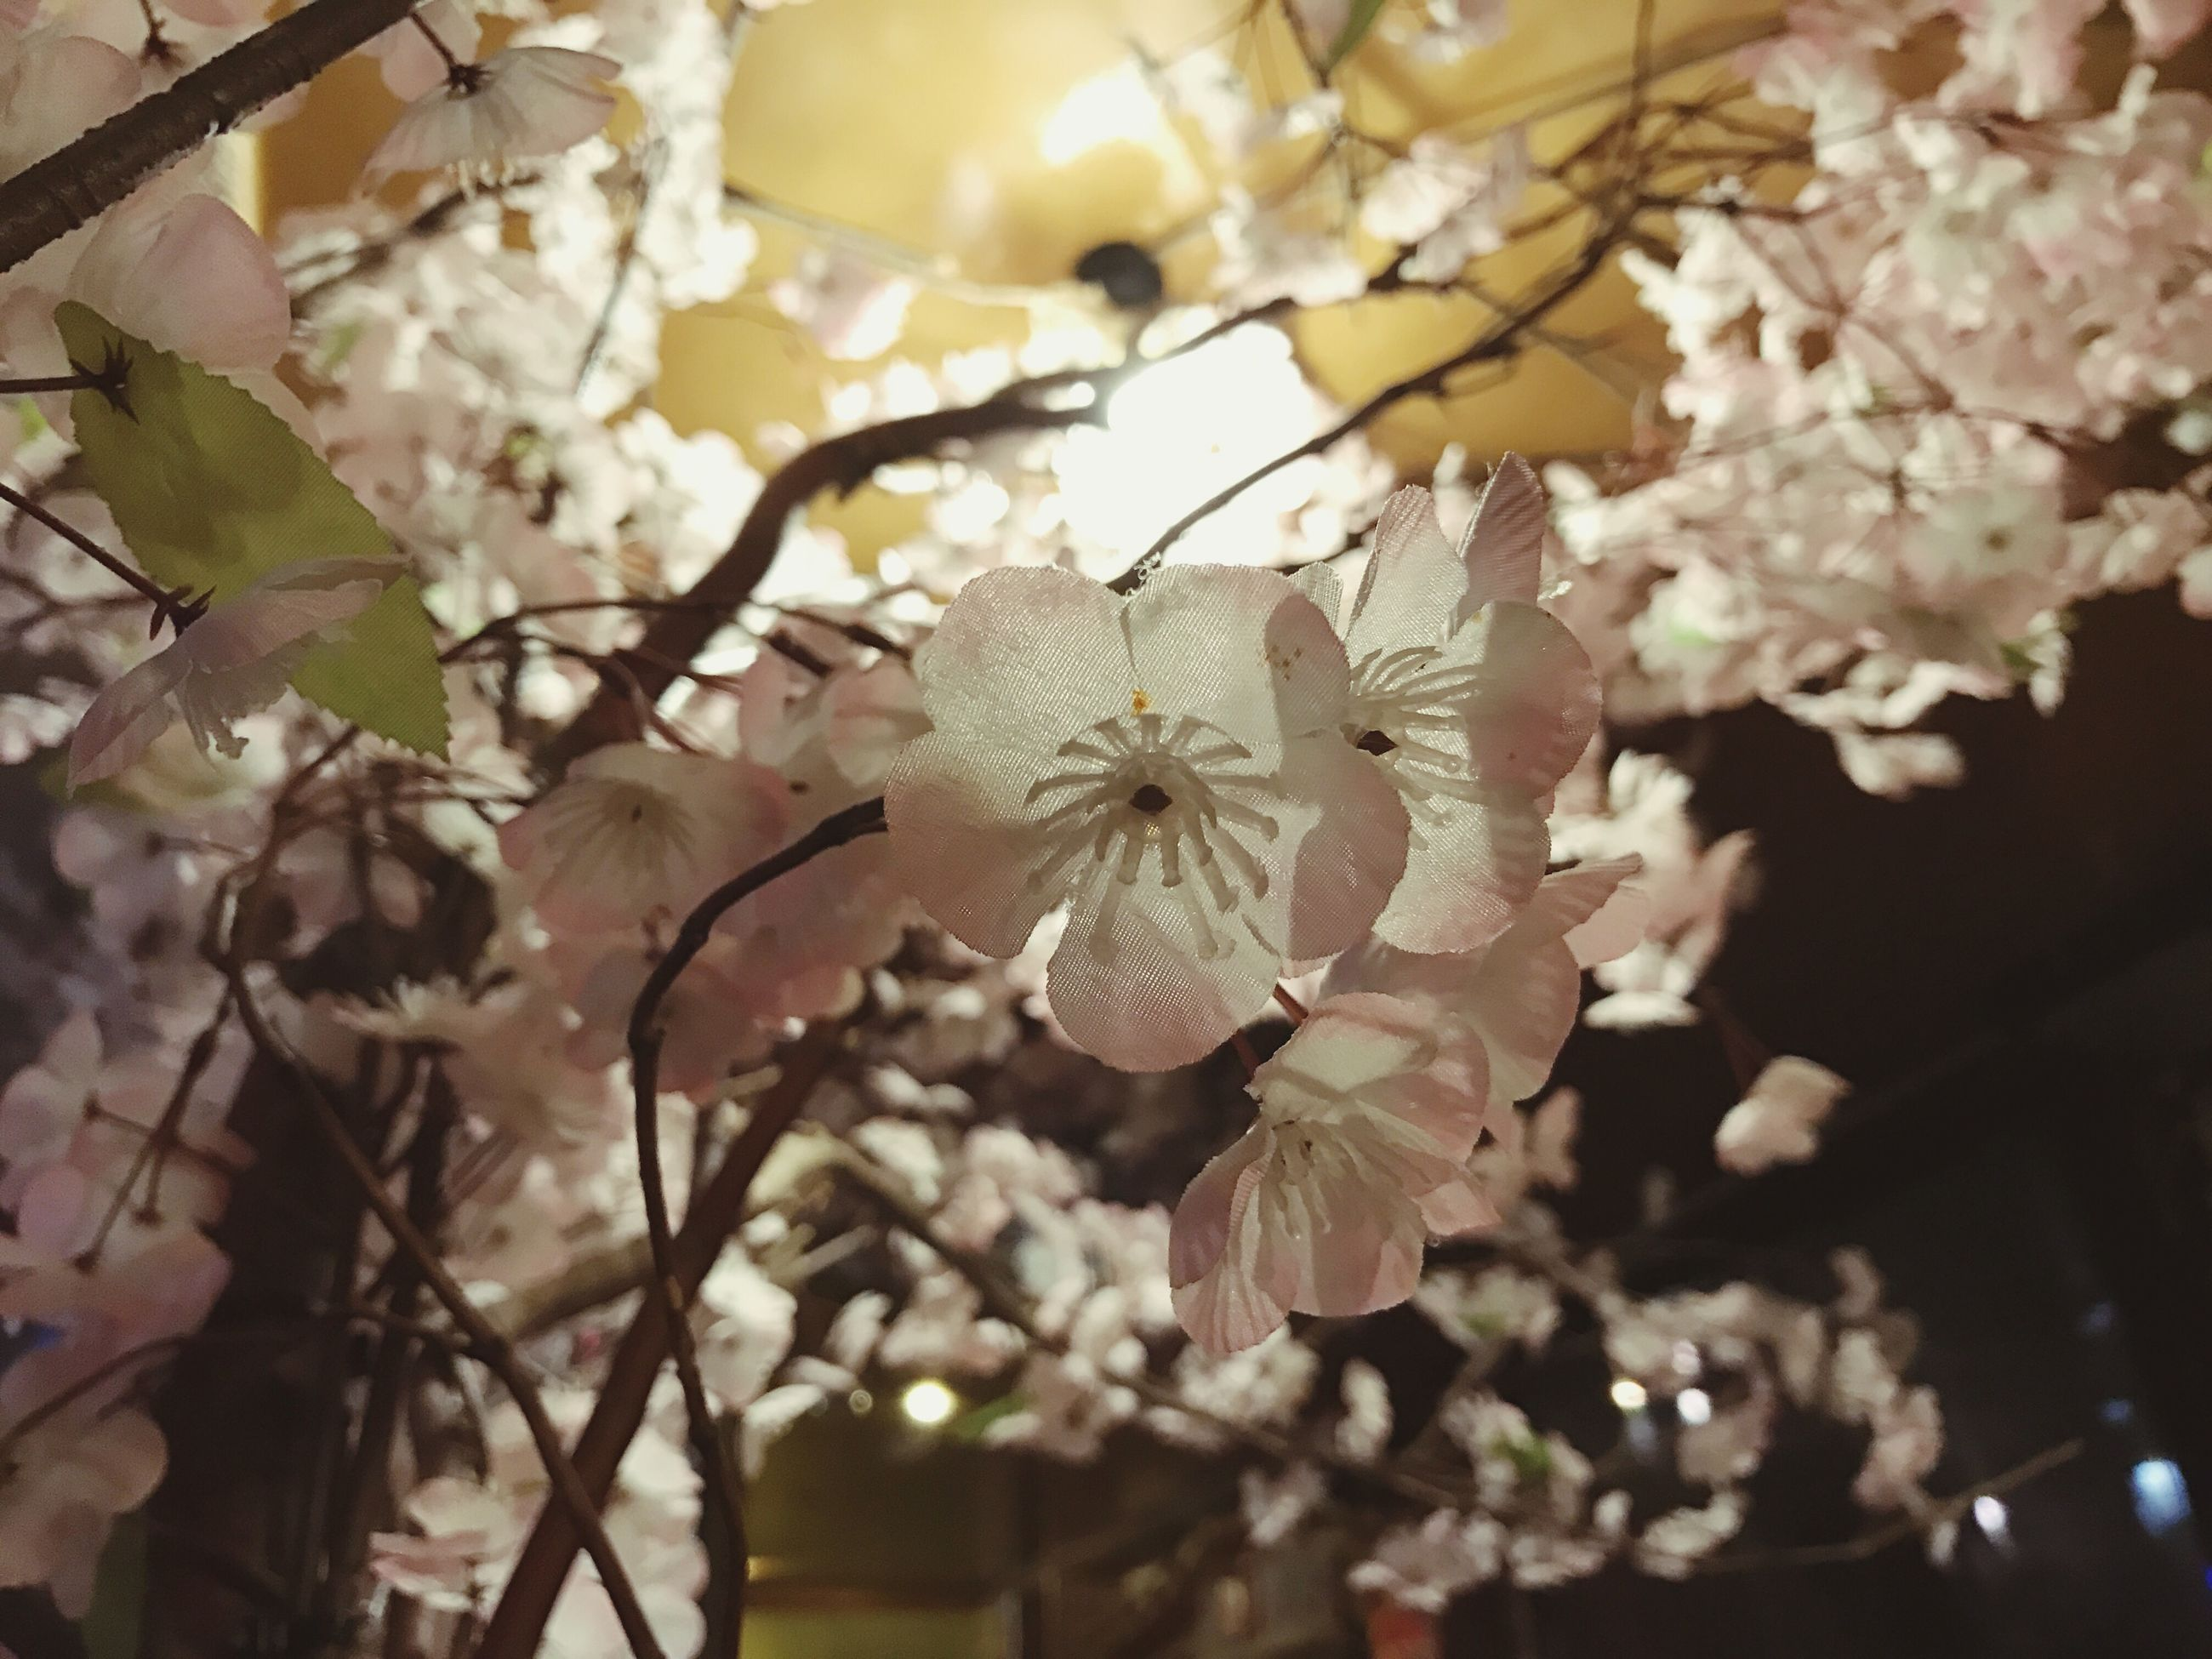 nature, growth, beauty in nature, tree, no people, springtime, low angle view, outdoors, close-up, leaf, flower, fragility, plant, day, branch, freshness, flower head